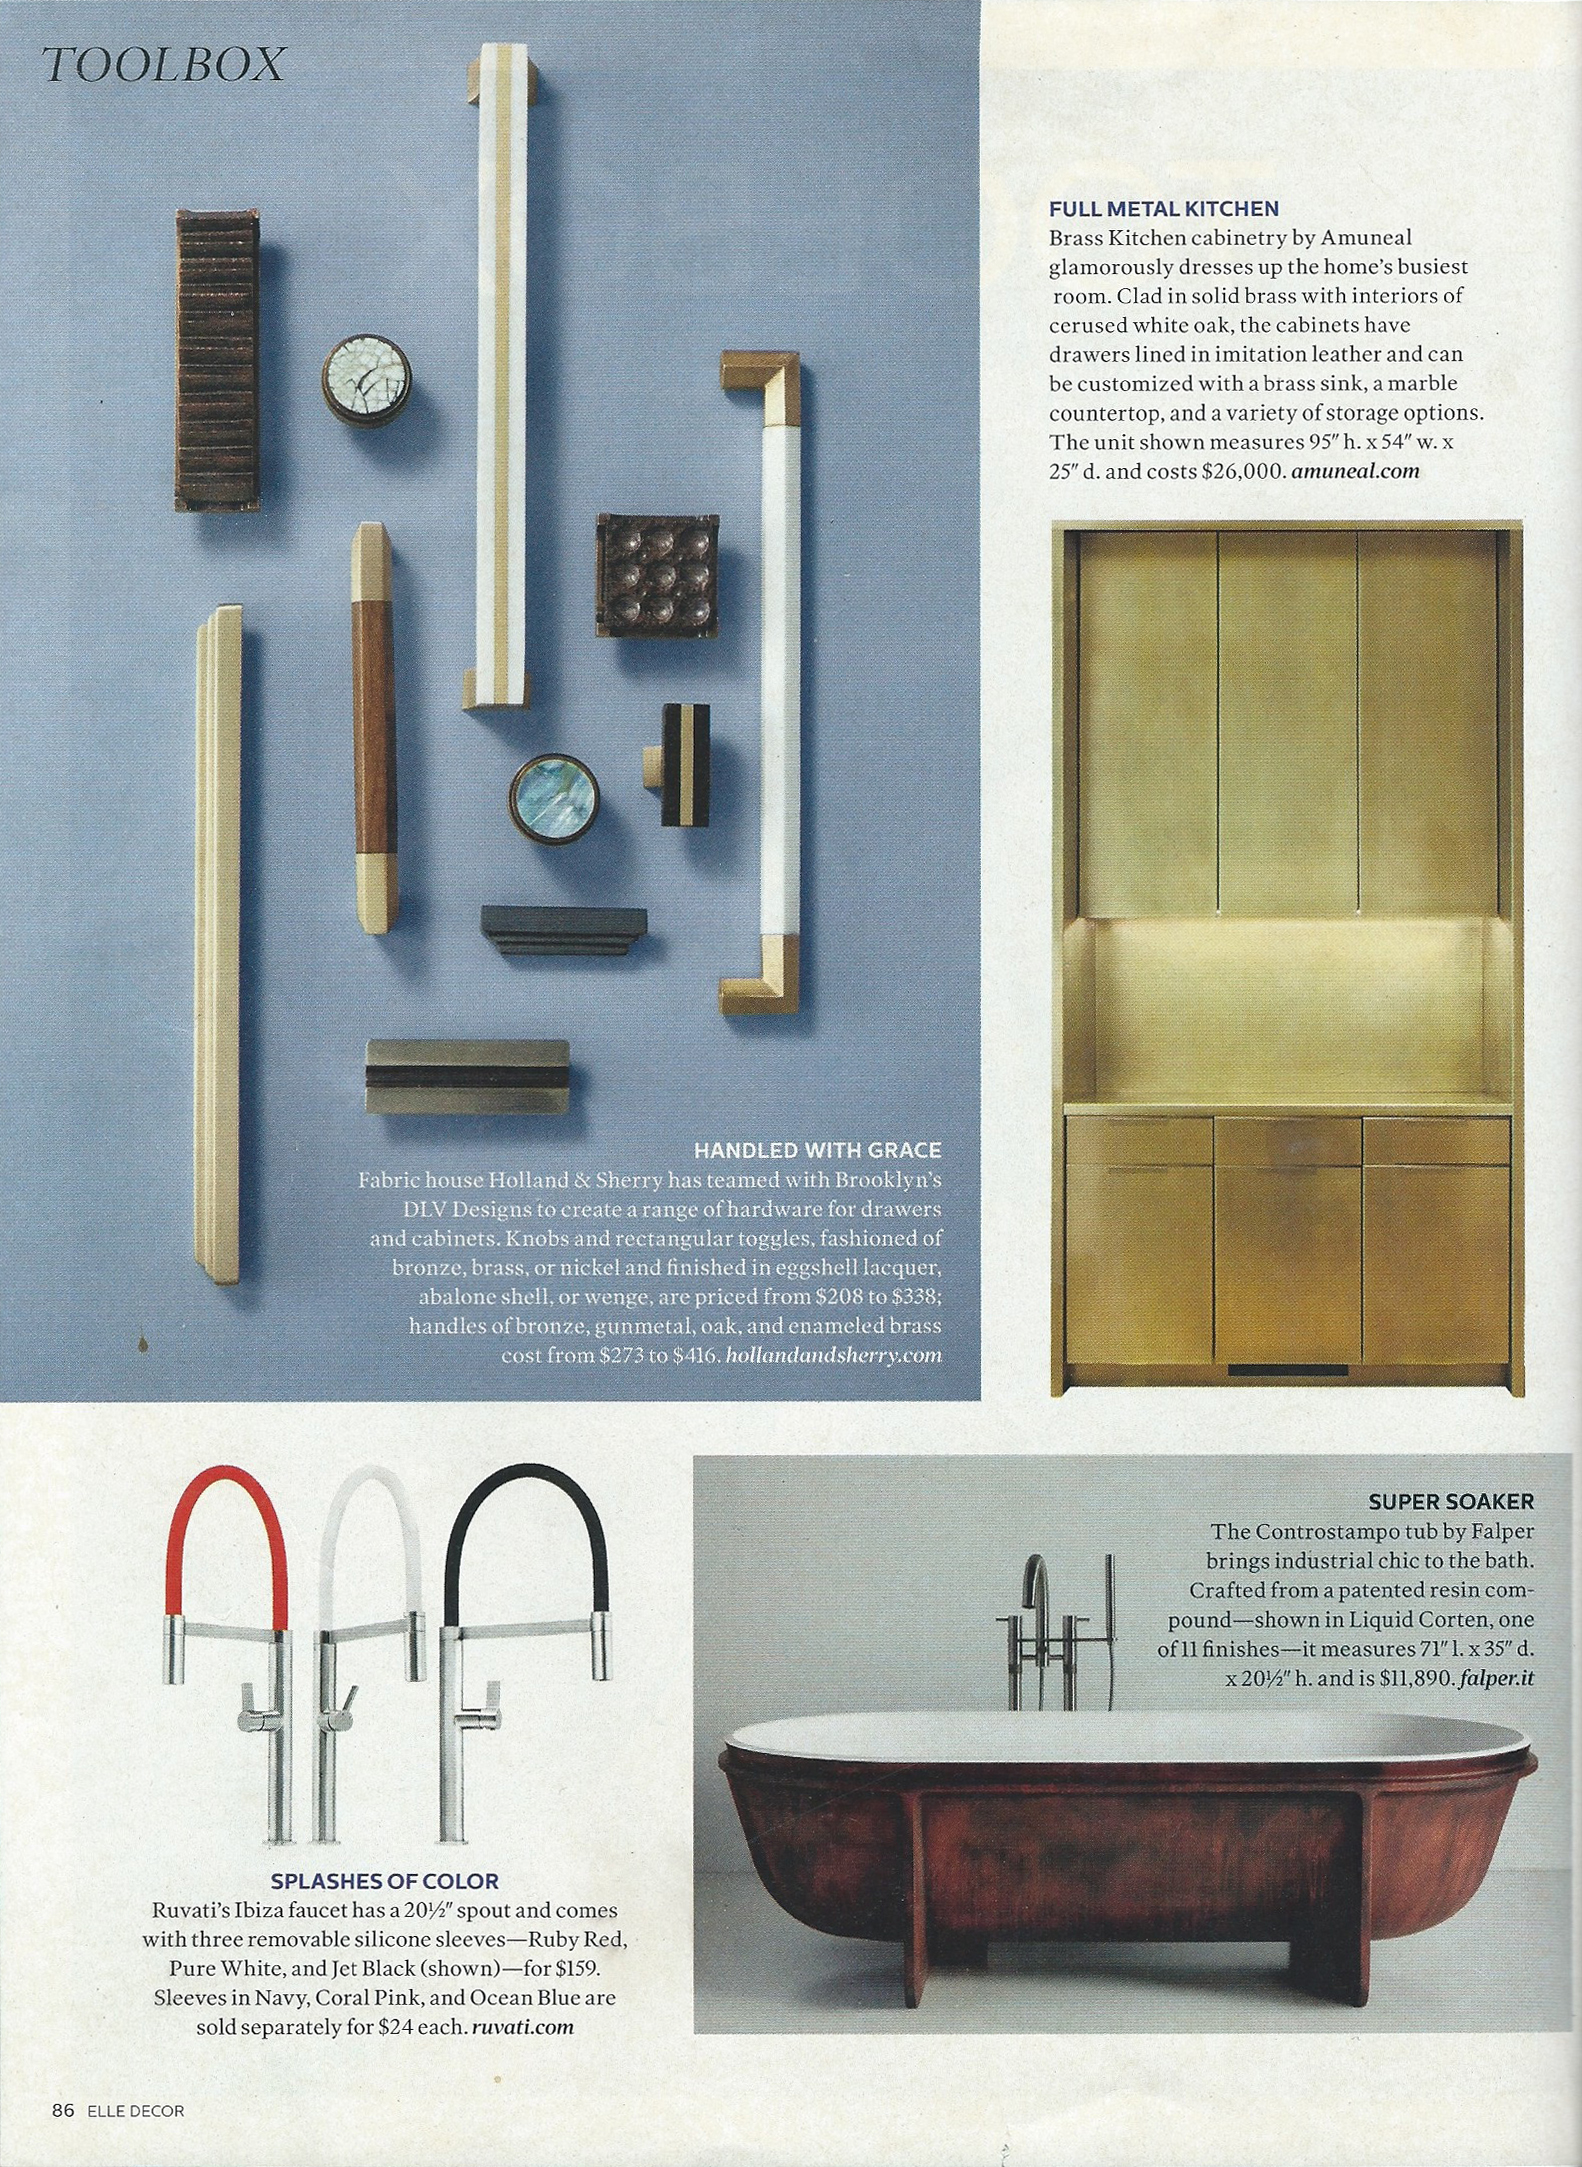 Elle Decor Toolbox Page March 2017 1.jpg